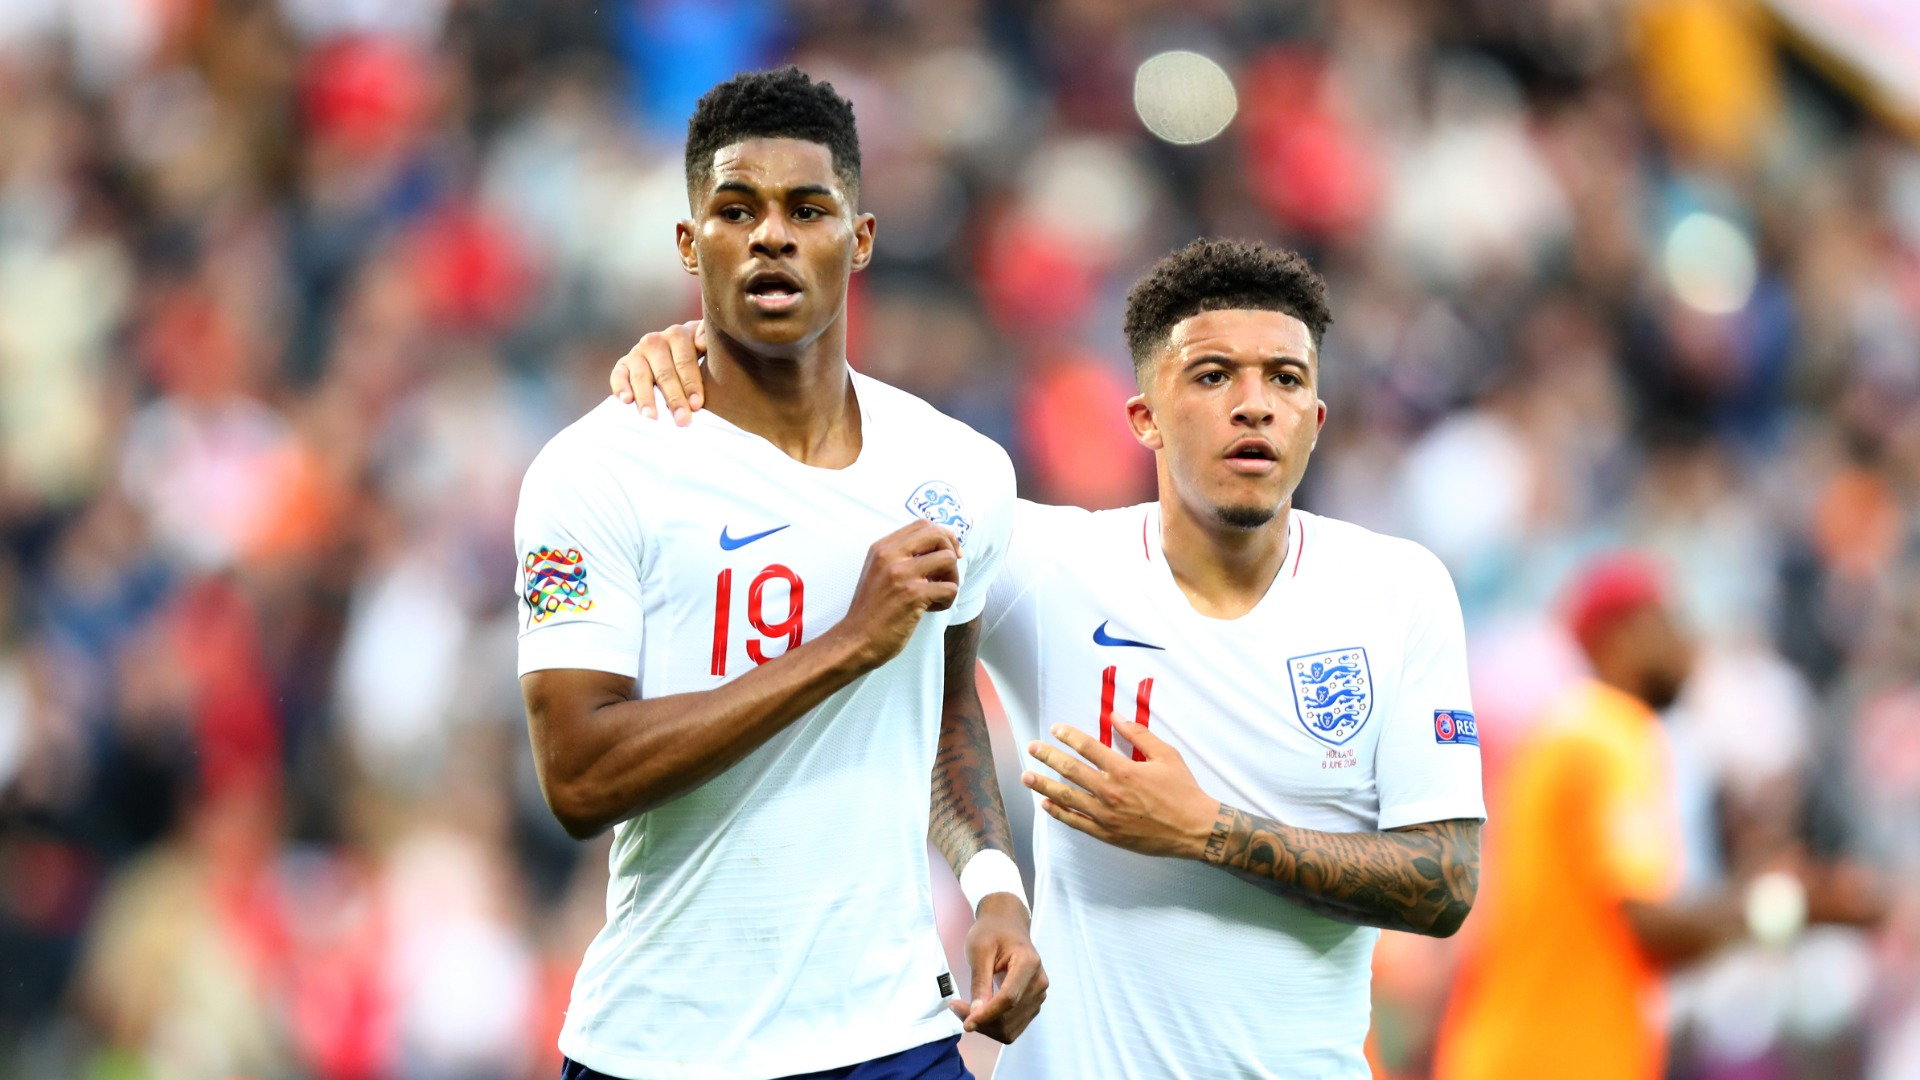 Rashford begs for rematch after exiting England's FIFA tournament to Sancho